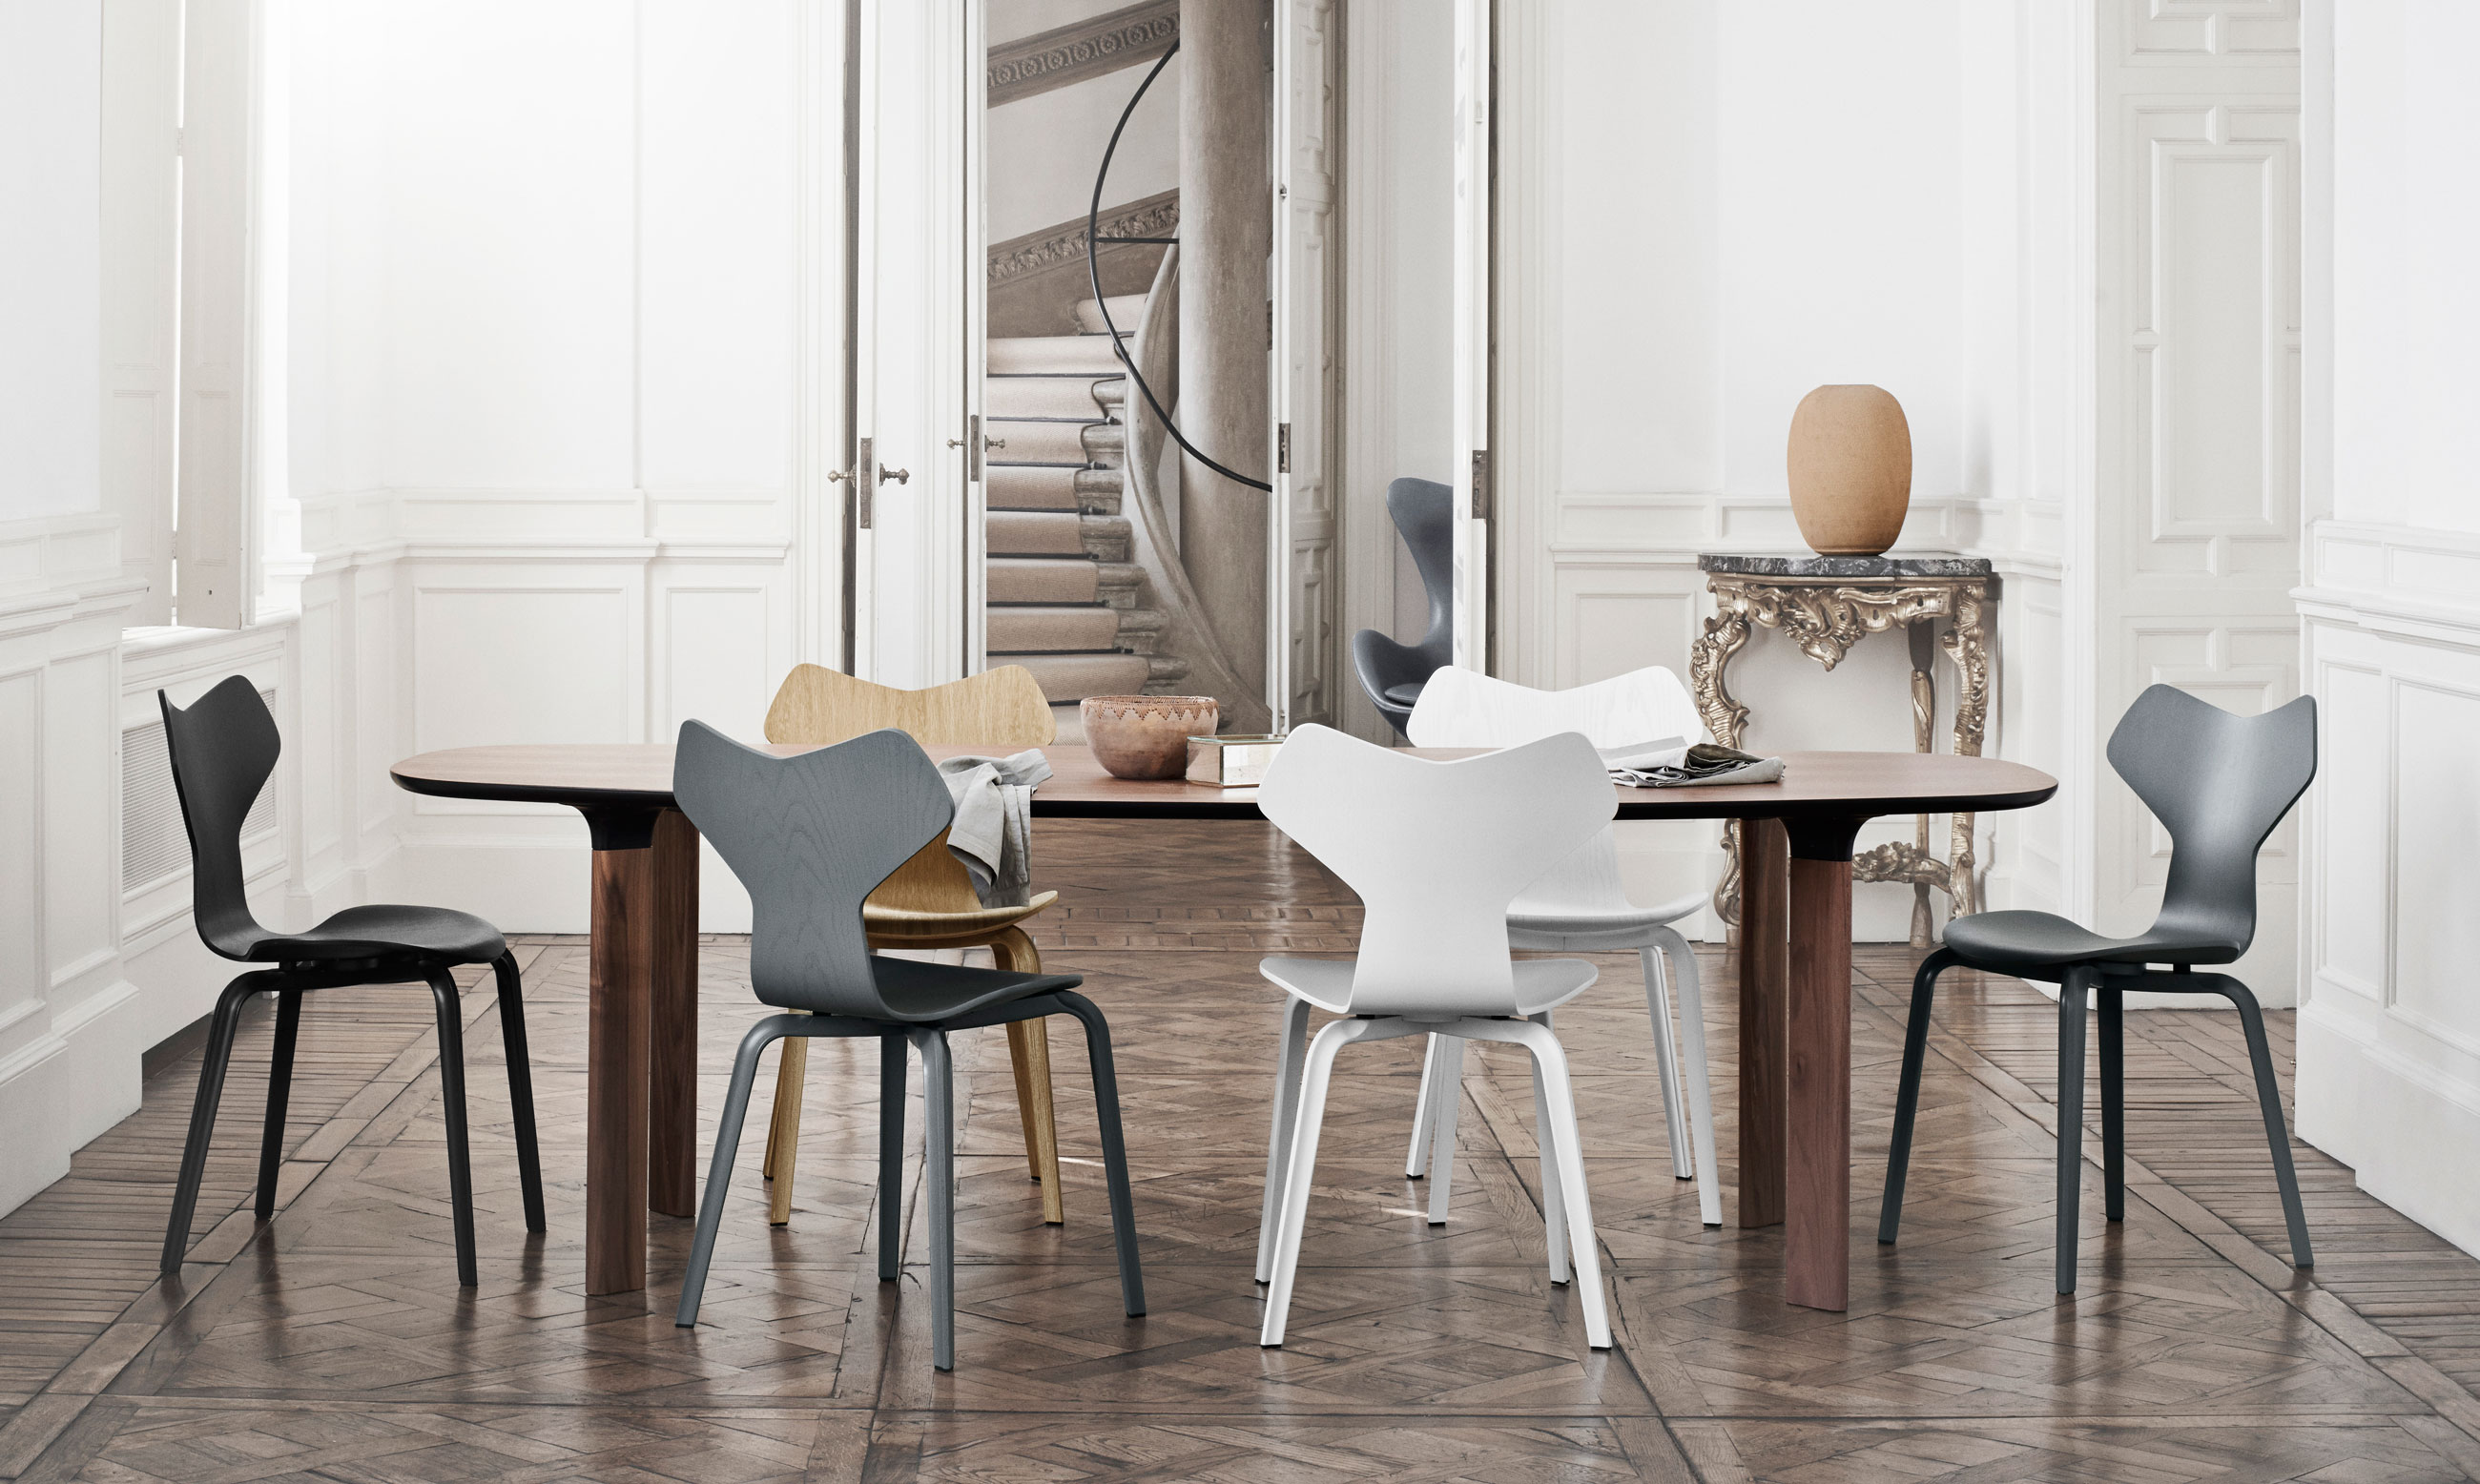 Fritz Hansen Analog Dining Table JH83 Walnut Veneer and Walnut Base with Grand Prix Chairs